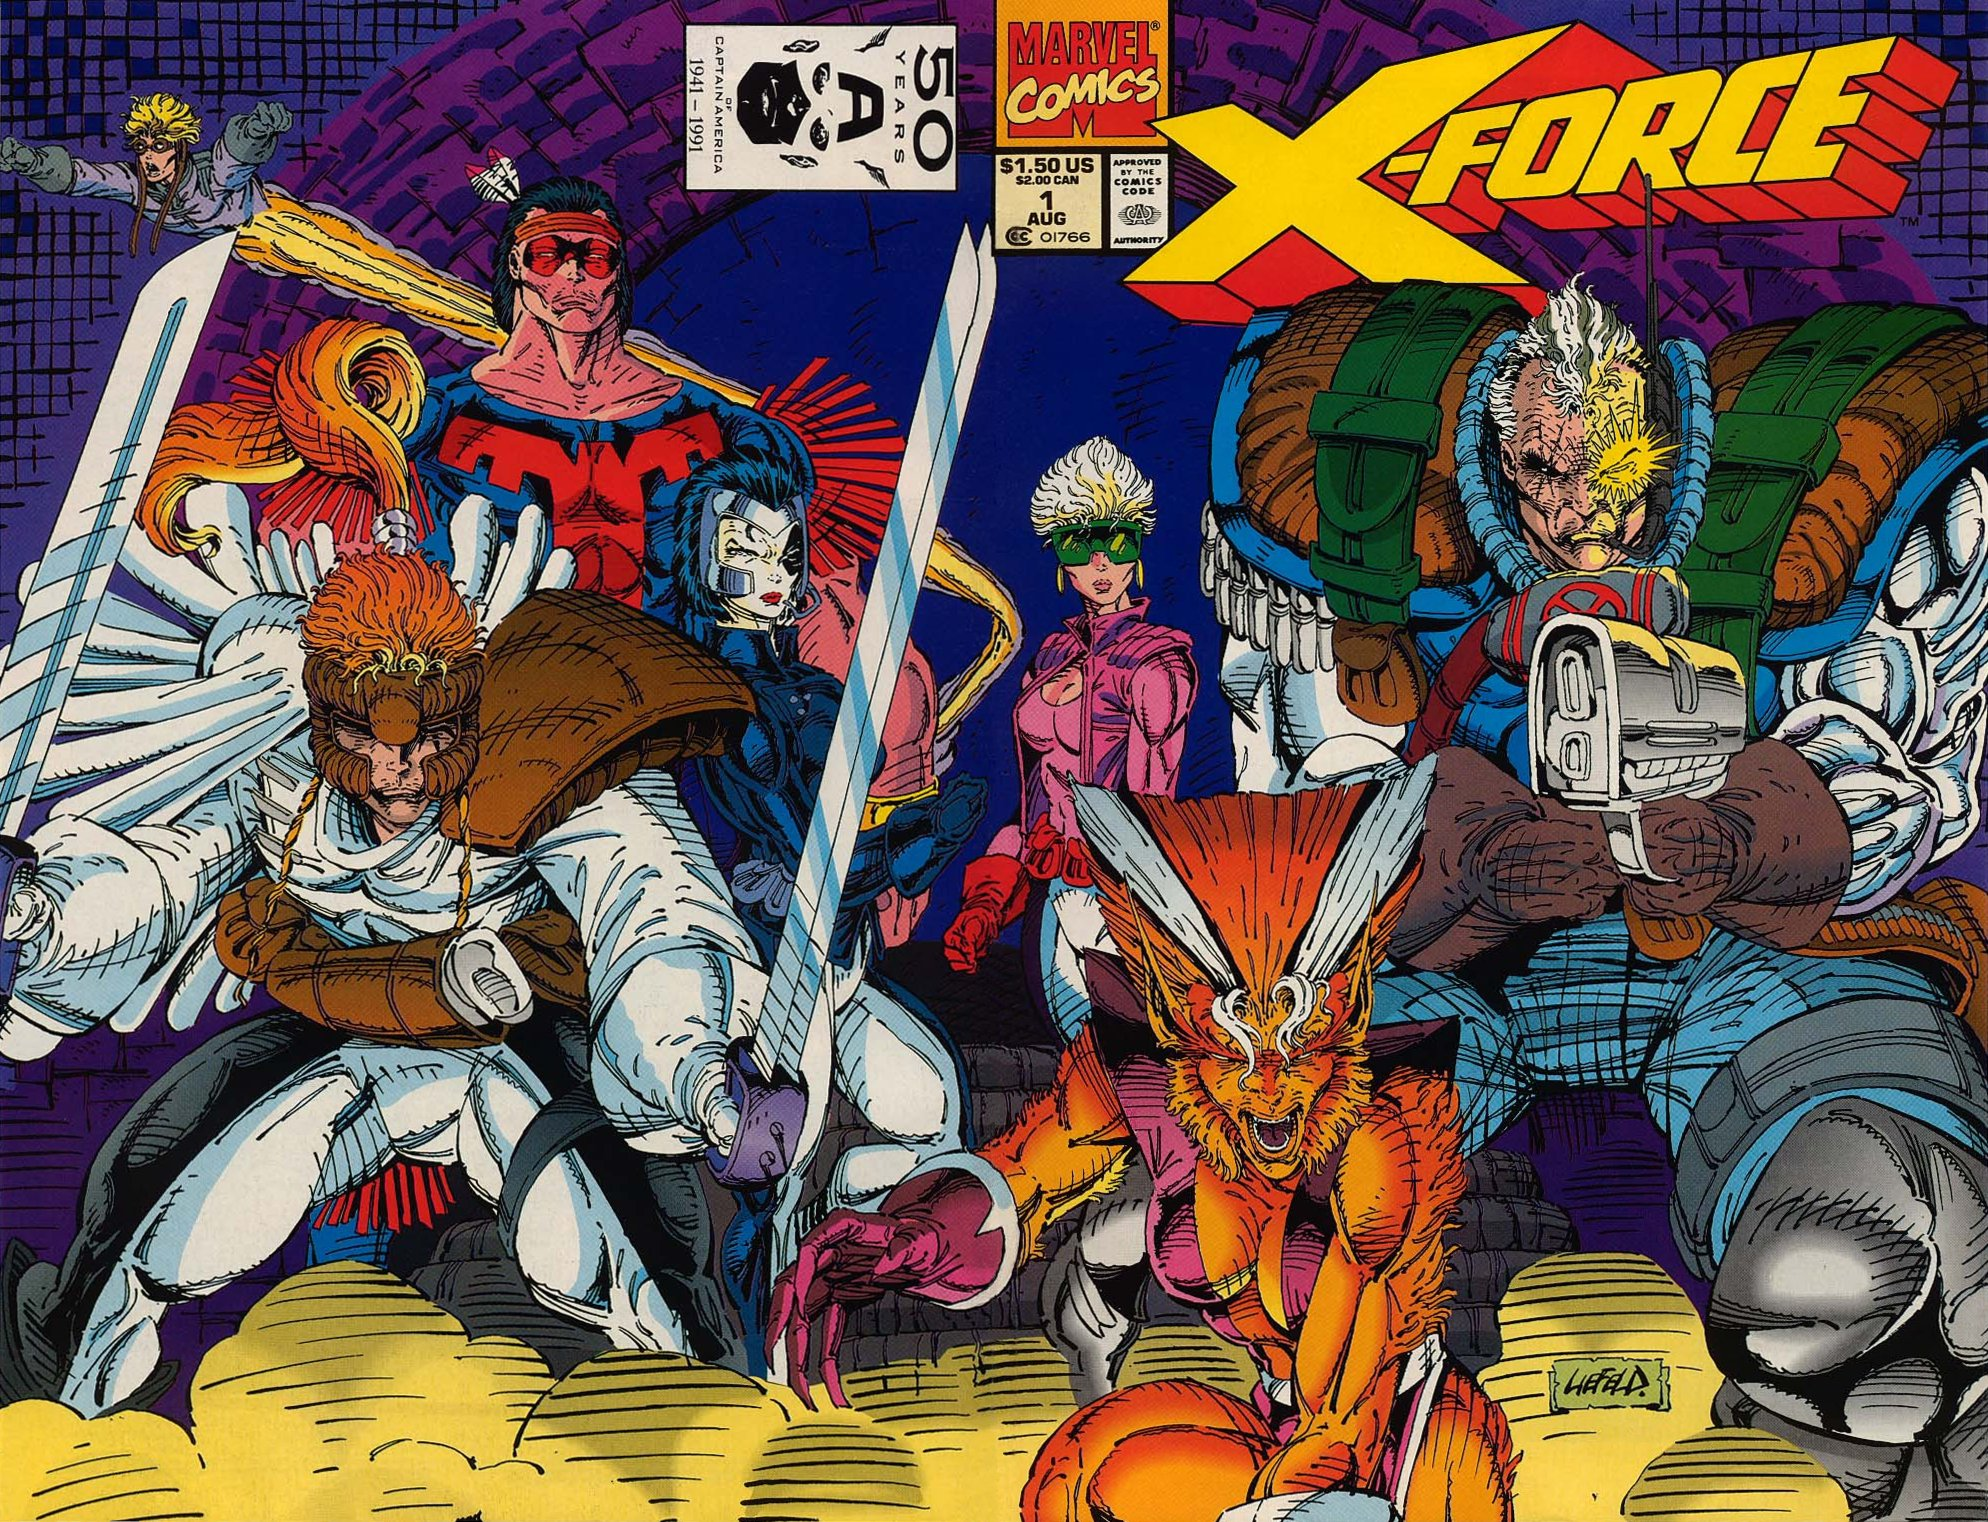 From L to R: Cannonball, Warpath, Domino, Shatterstar, Boom-Boom, Feral, and Cable.